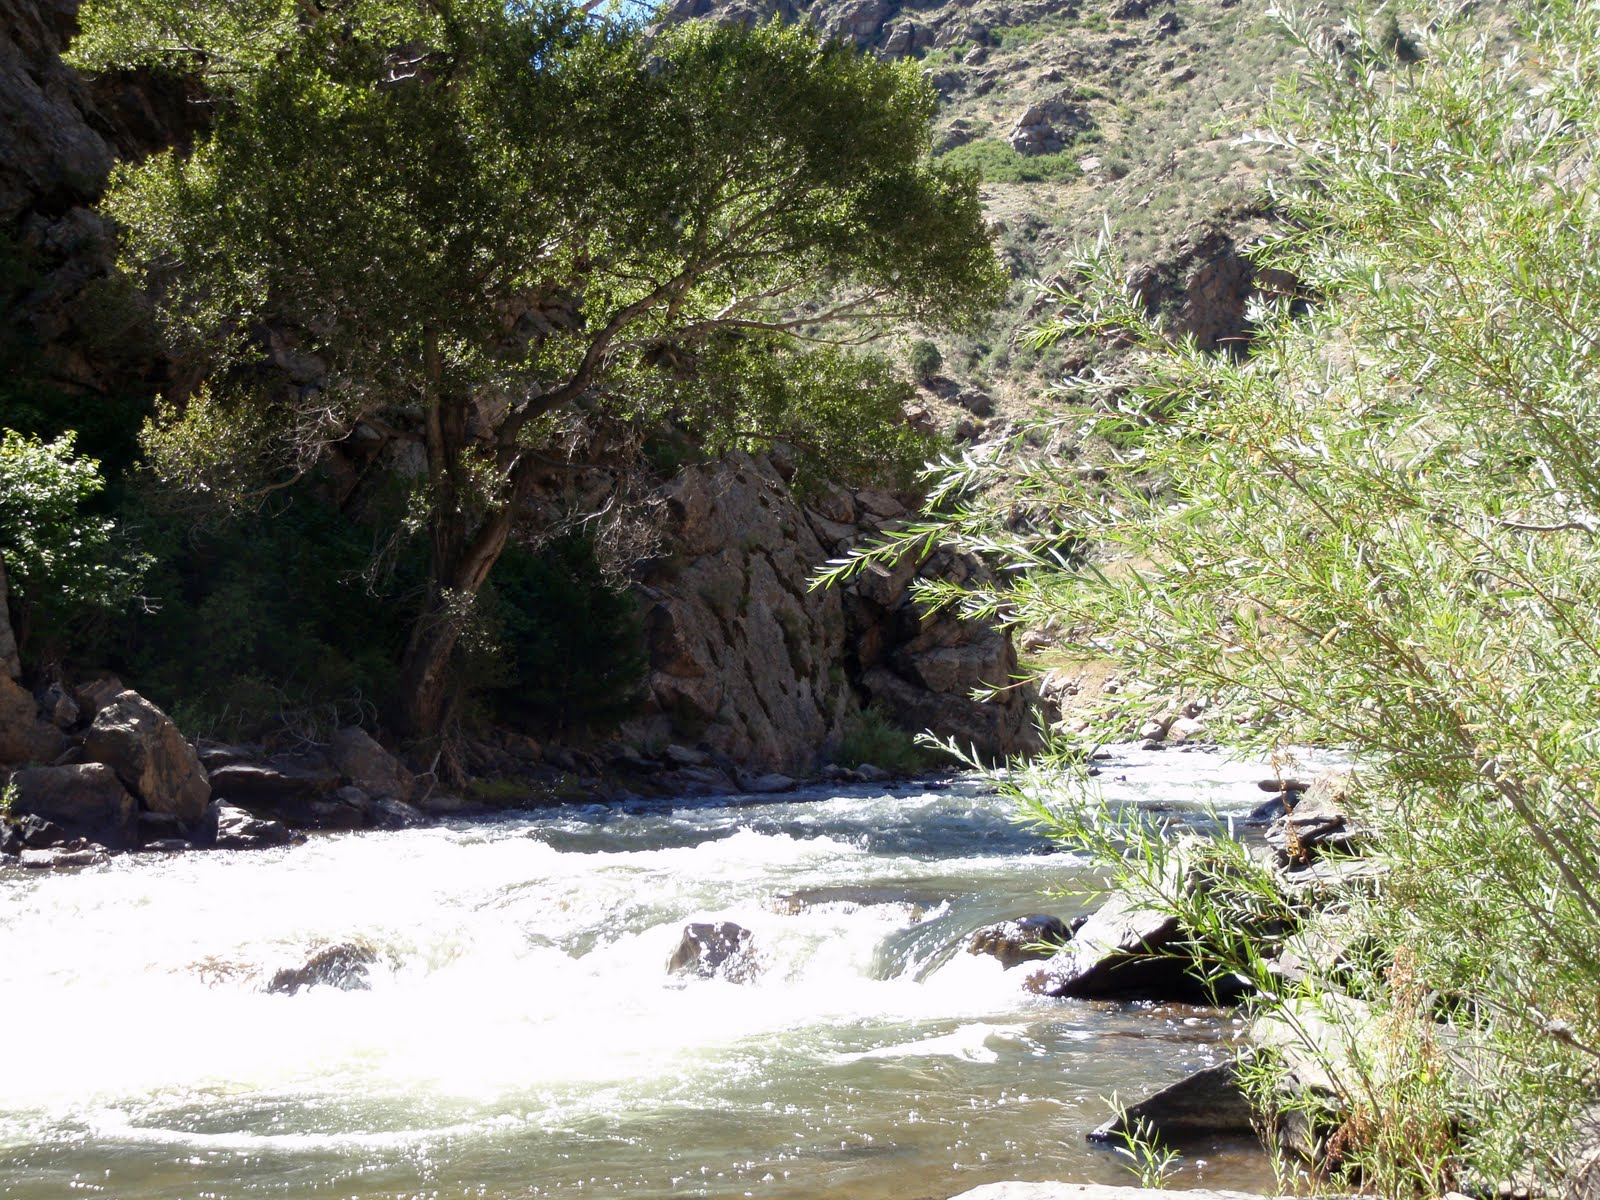 Colorado fly fishing reports september 2010 for Clear creek fishing report